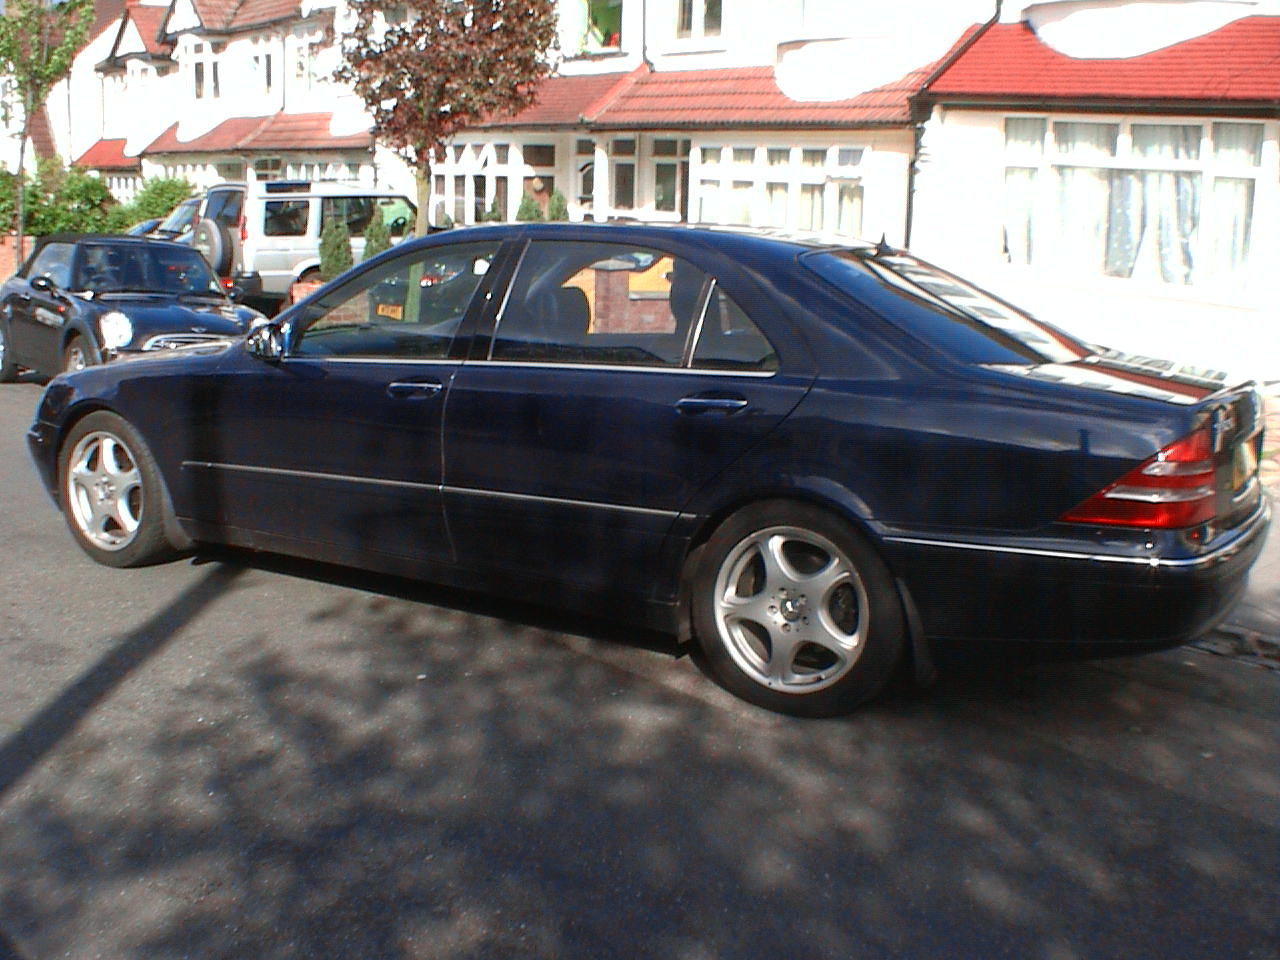 2001 mercedes benz s class other pictures cargurus for 2001 mercedes benz s430